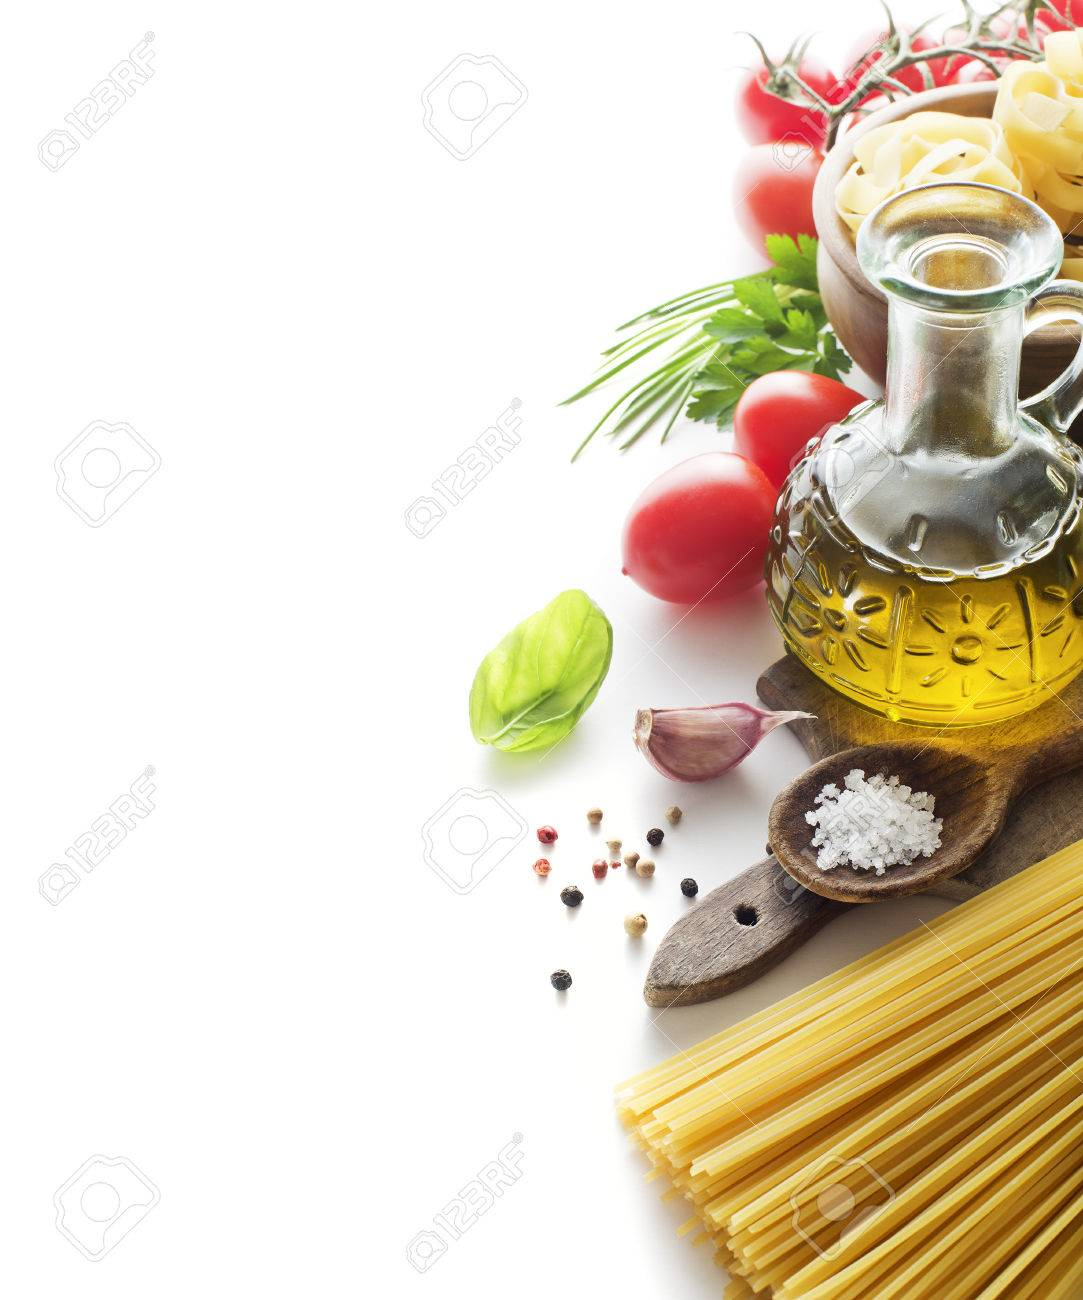 Raw Pasta with ingredients isolated on white background - 36811036